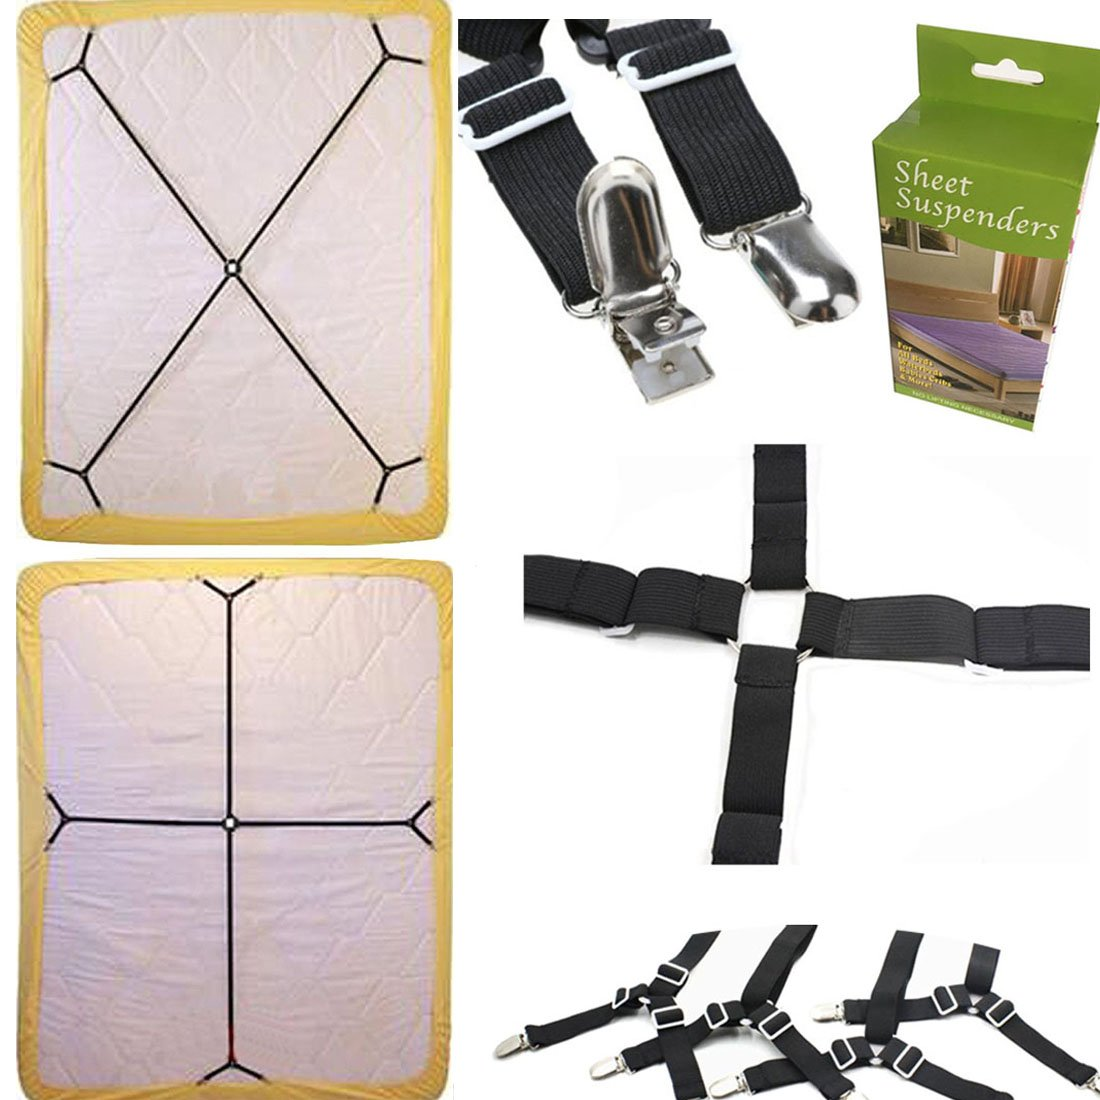 FlyingP Sheet Bed Suspenders Bed Bands Crisscross Adjustable Bed Fitted Sheet Straps Suspenders Grippers Clippers Bed Holder Elastic Sheet Strap Fasteners Mattress Pad Duvet Cover HEAVY DUTY Flying penguins COMIN18JU069481